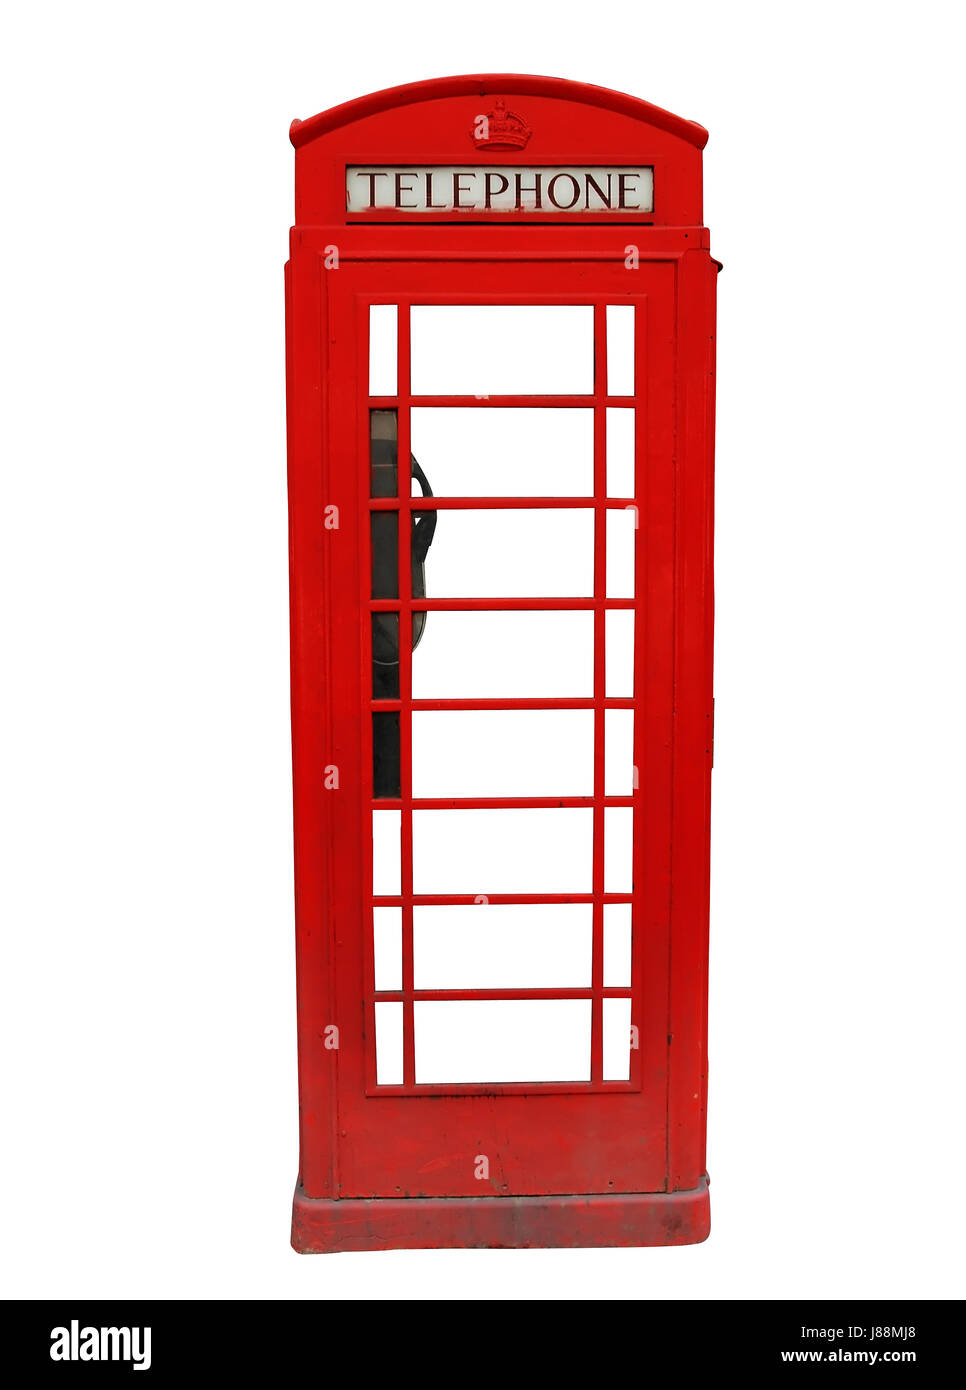 telephone, phone, england, booth, britain, red, telephone box, phonebooth, - Stock Image